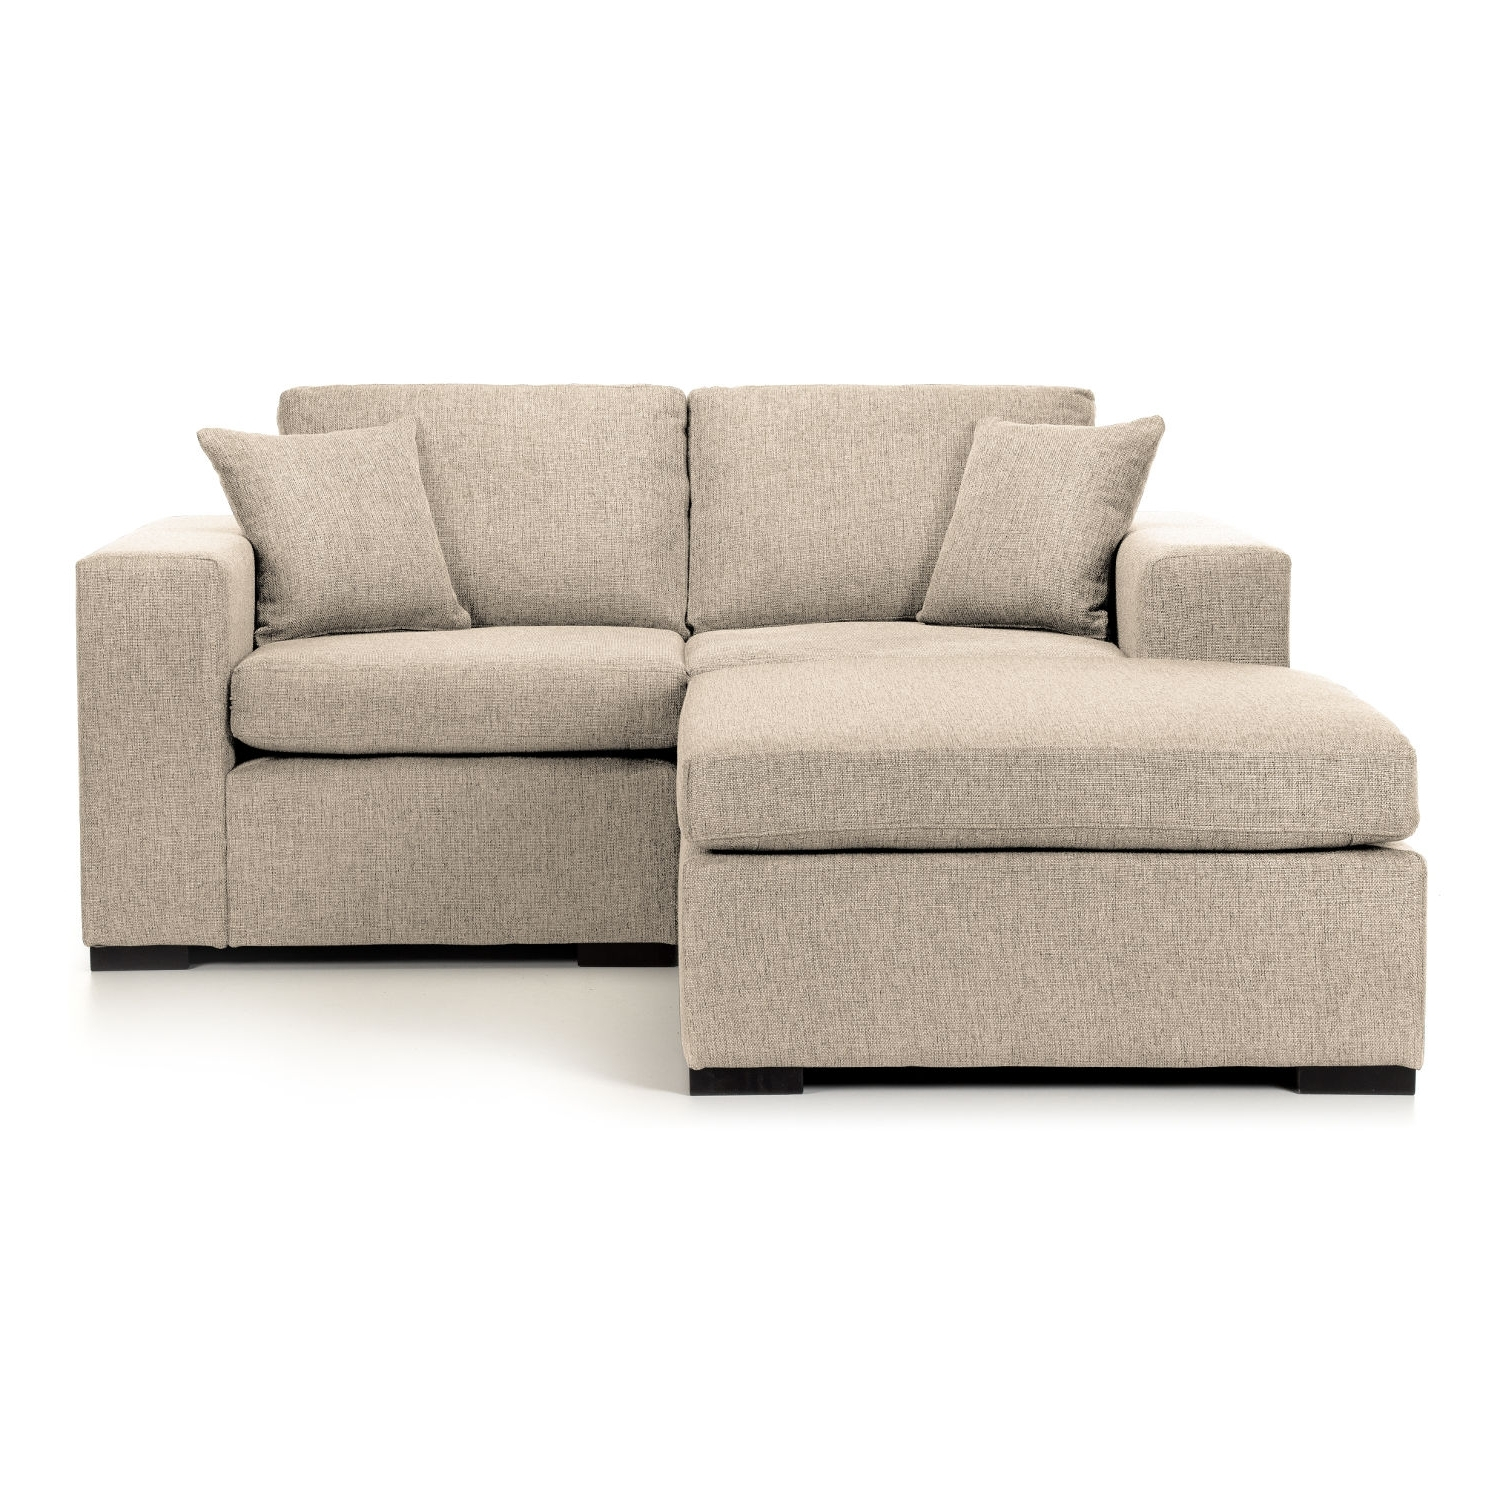 Lola Small Modular Corner Chaise Sofa – Next Day Delivery Lola Within Current Small Chaise Sofas (View 2 of 15)